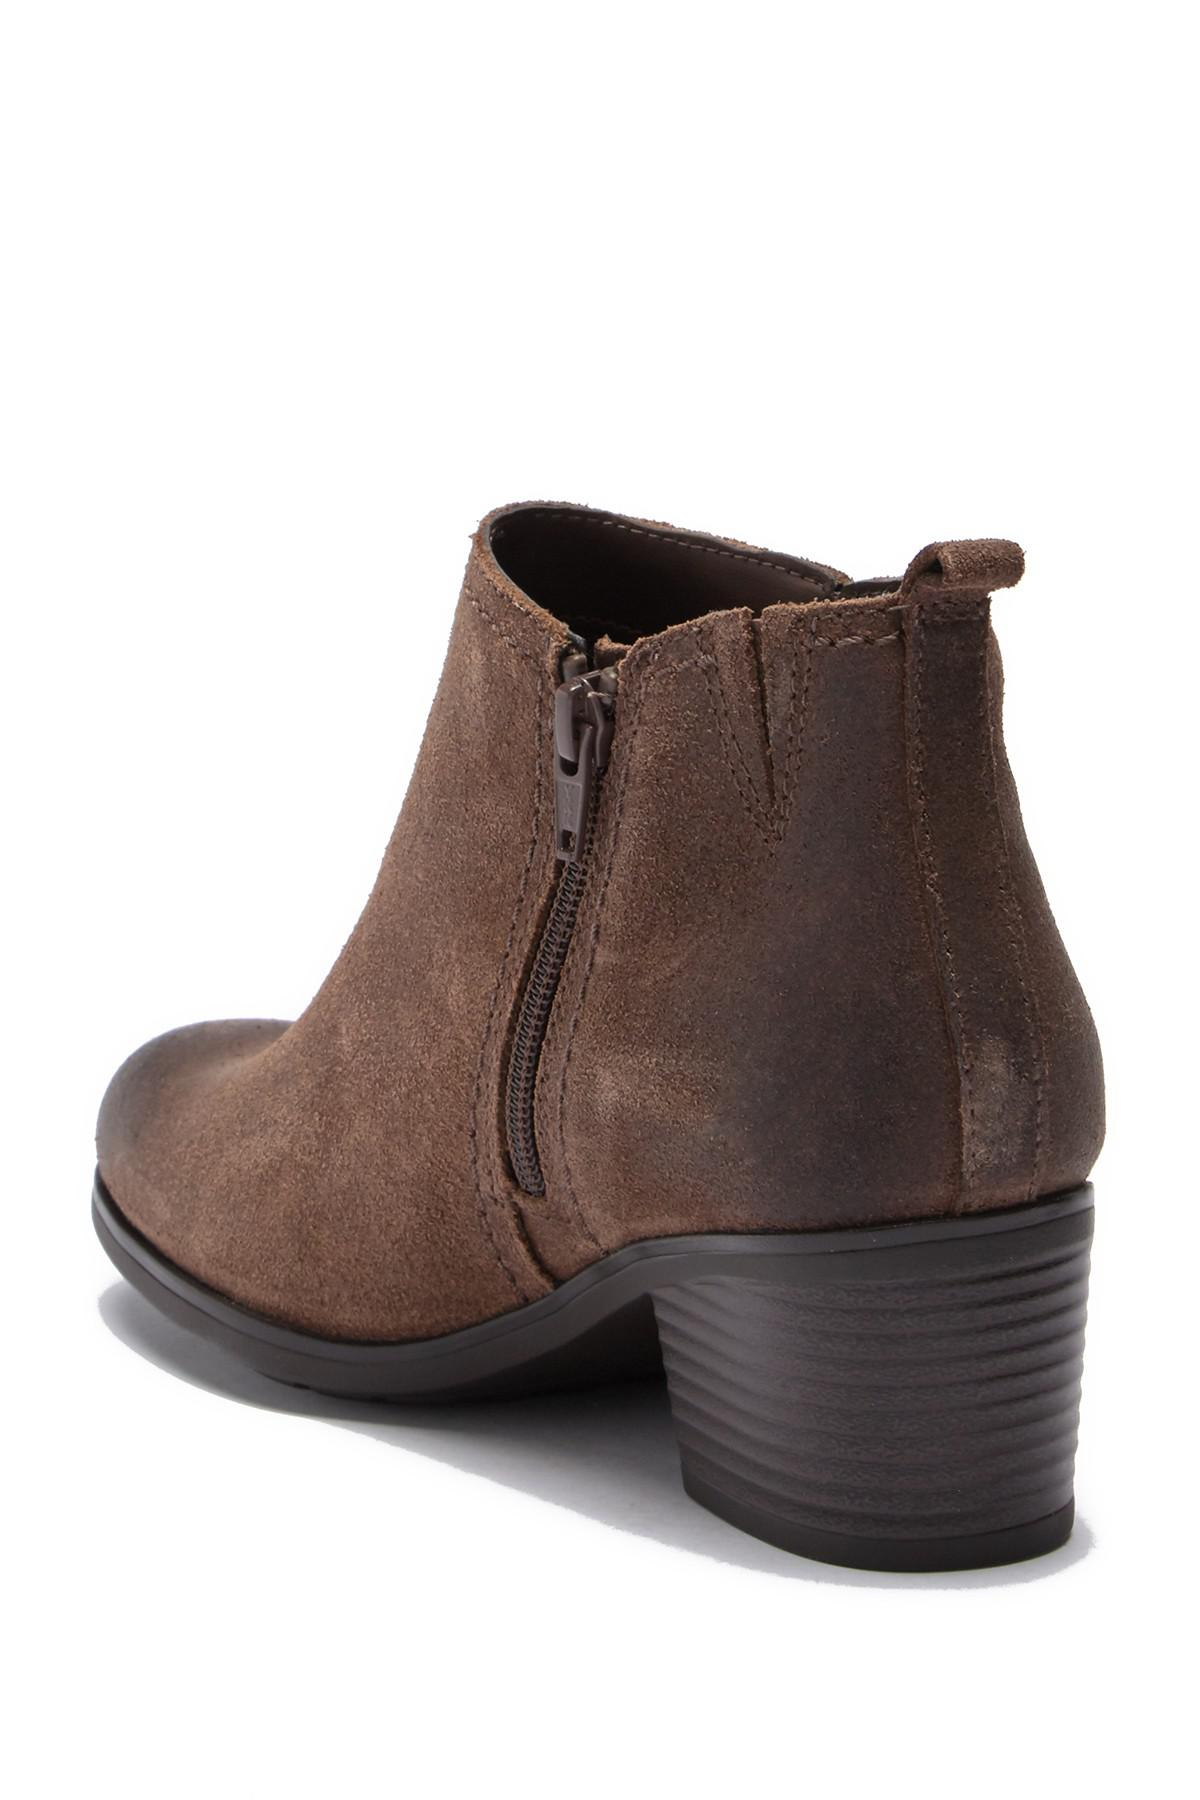 d8cd236a0e8c5 ... Side Zip Leather Ankle Bootie - Wide Width Available - Lyst. View  fullscreen